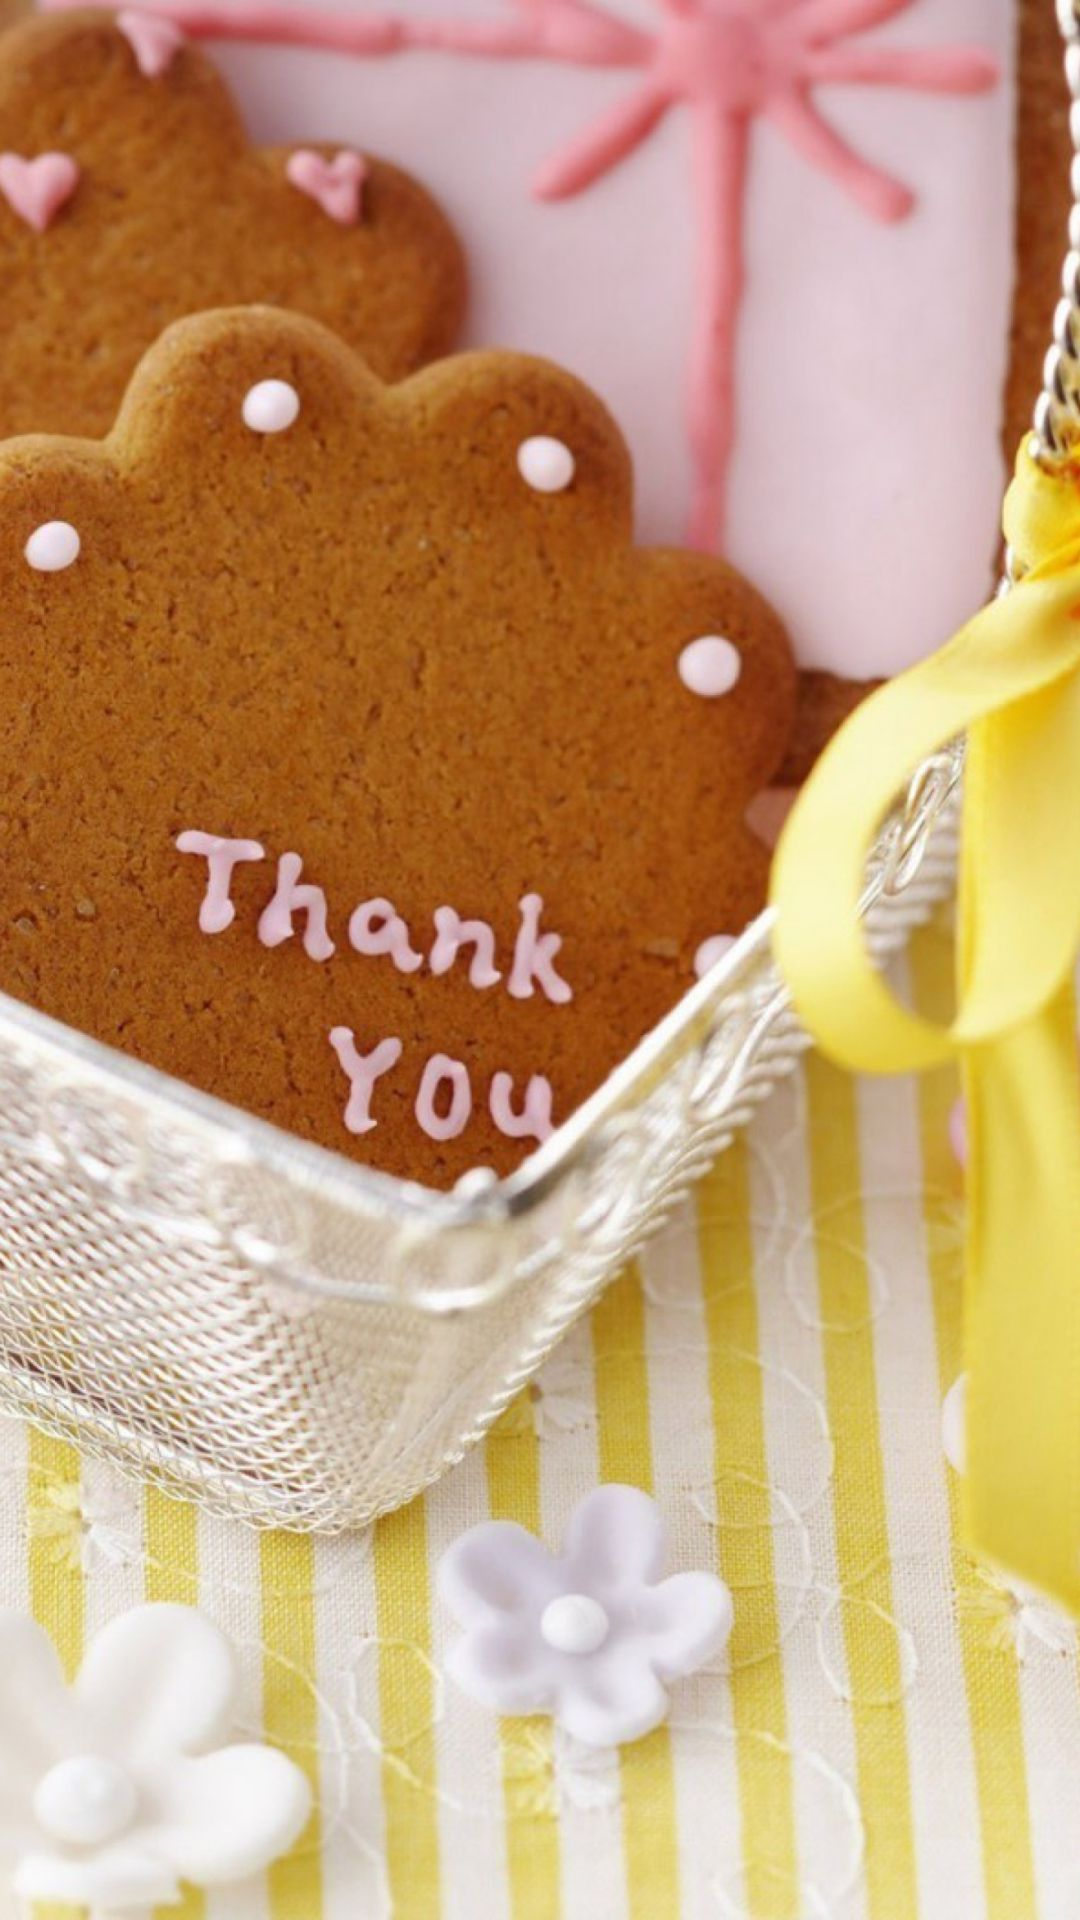 Thank You Cookie Wallpaper For Nokia Lumia